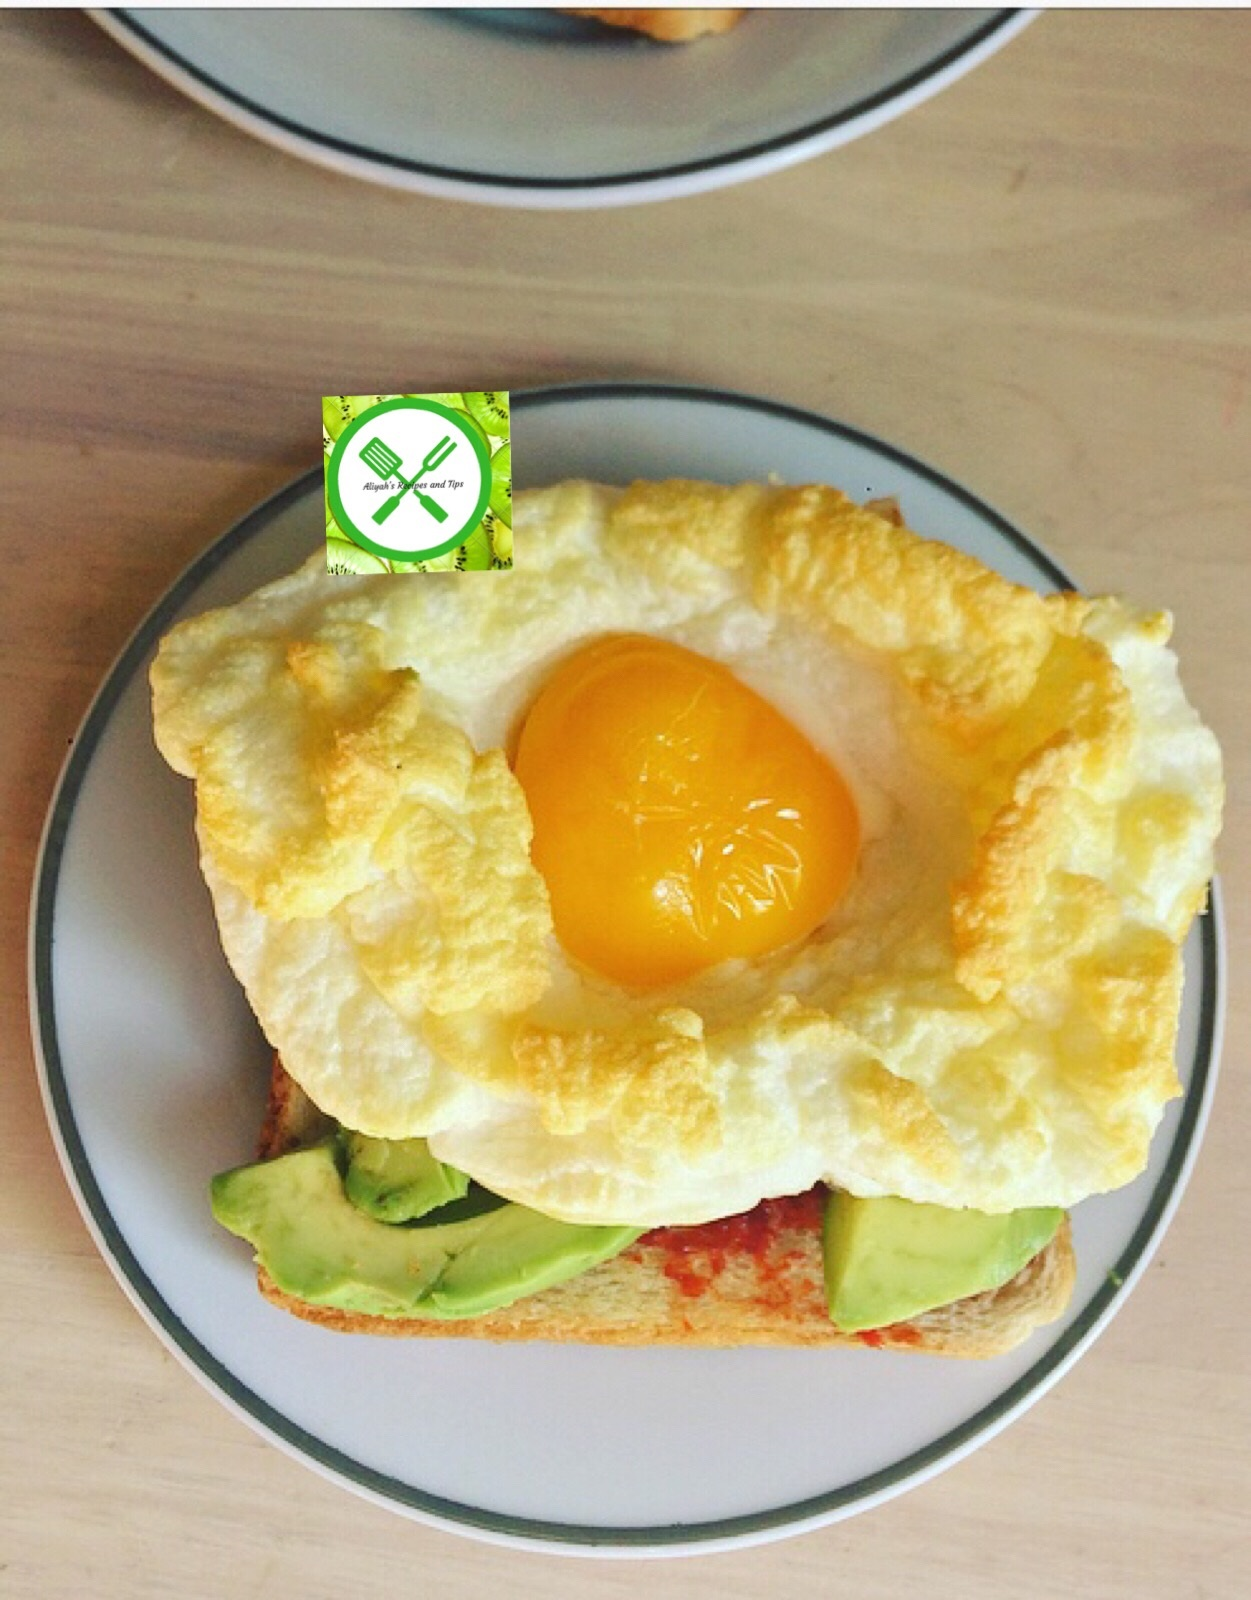 Egg cloud with toasted bread